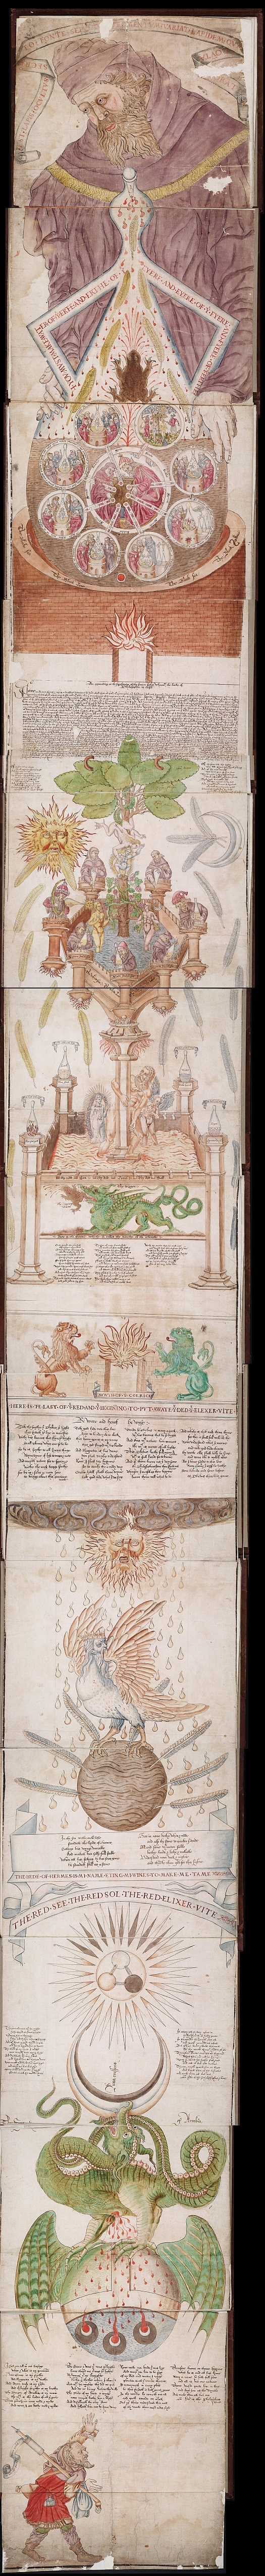 Ripley Scroll - 15th century emblematic alchemy manuscript